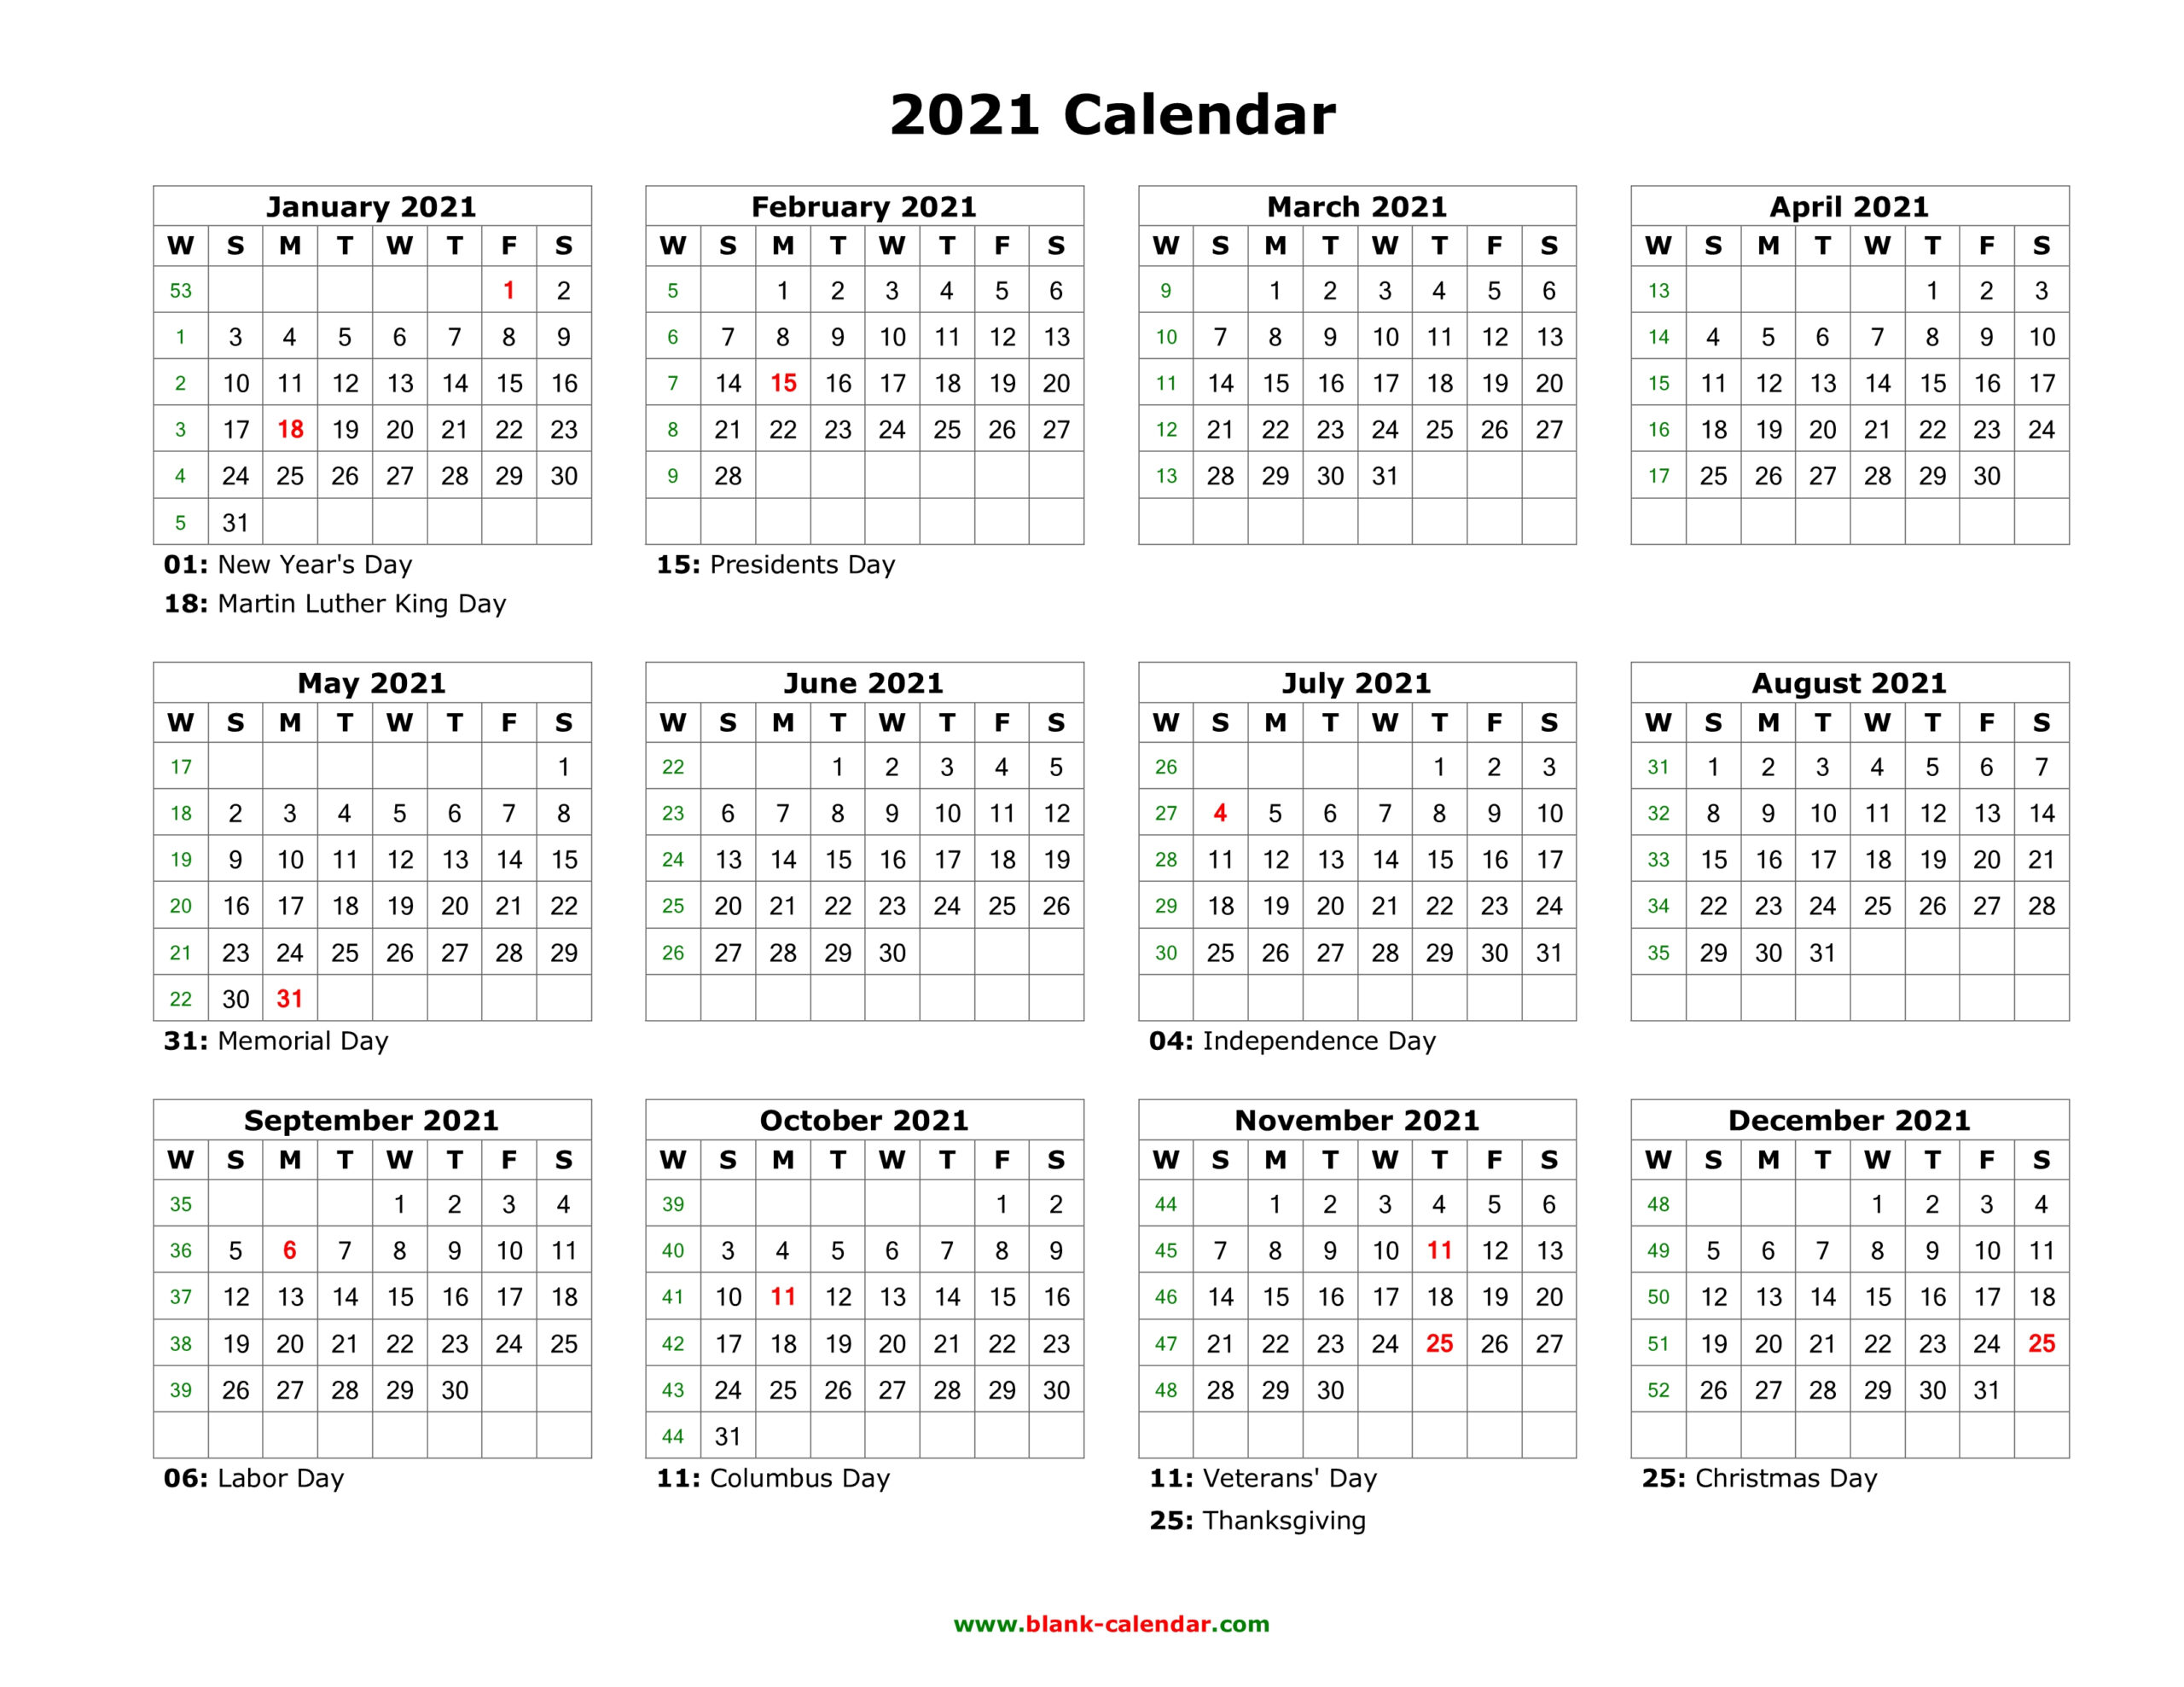 Blank Calendar 2021 | Free Download Calendar Templates within 2021 Calendar To Fill In